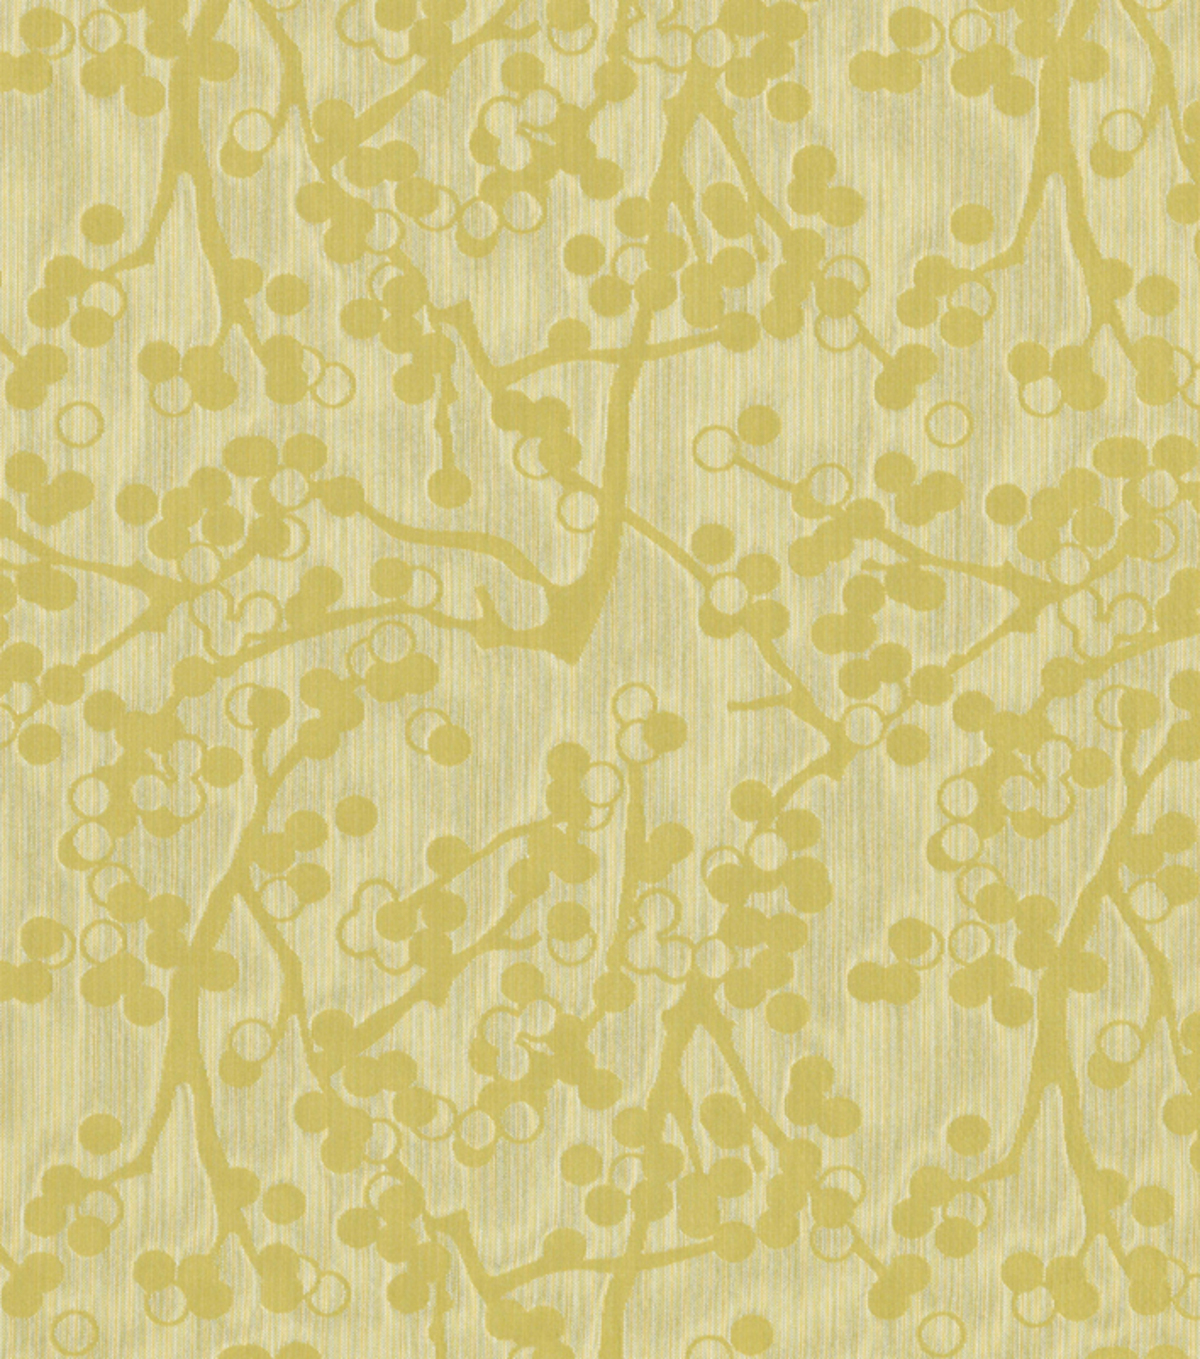 Home Decor 8\u0022x8\u0022 Fabric Swatch-Cherries Yellow/Green